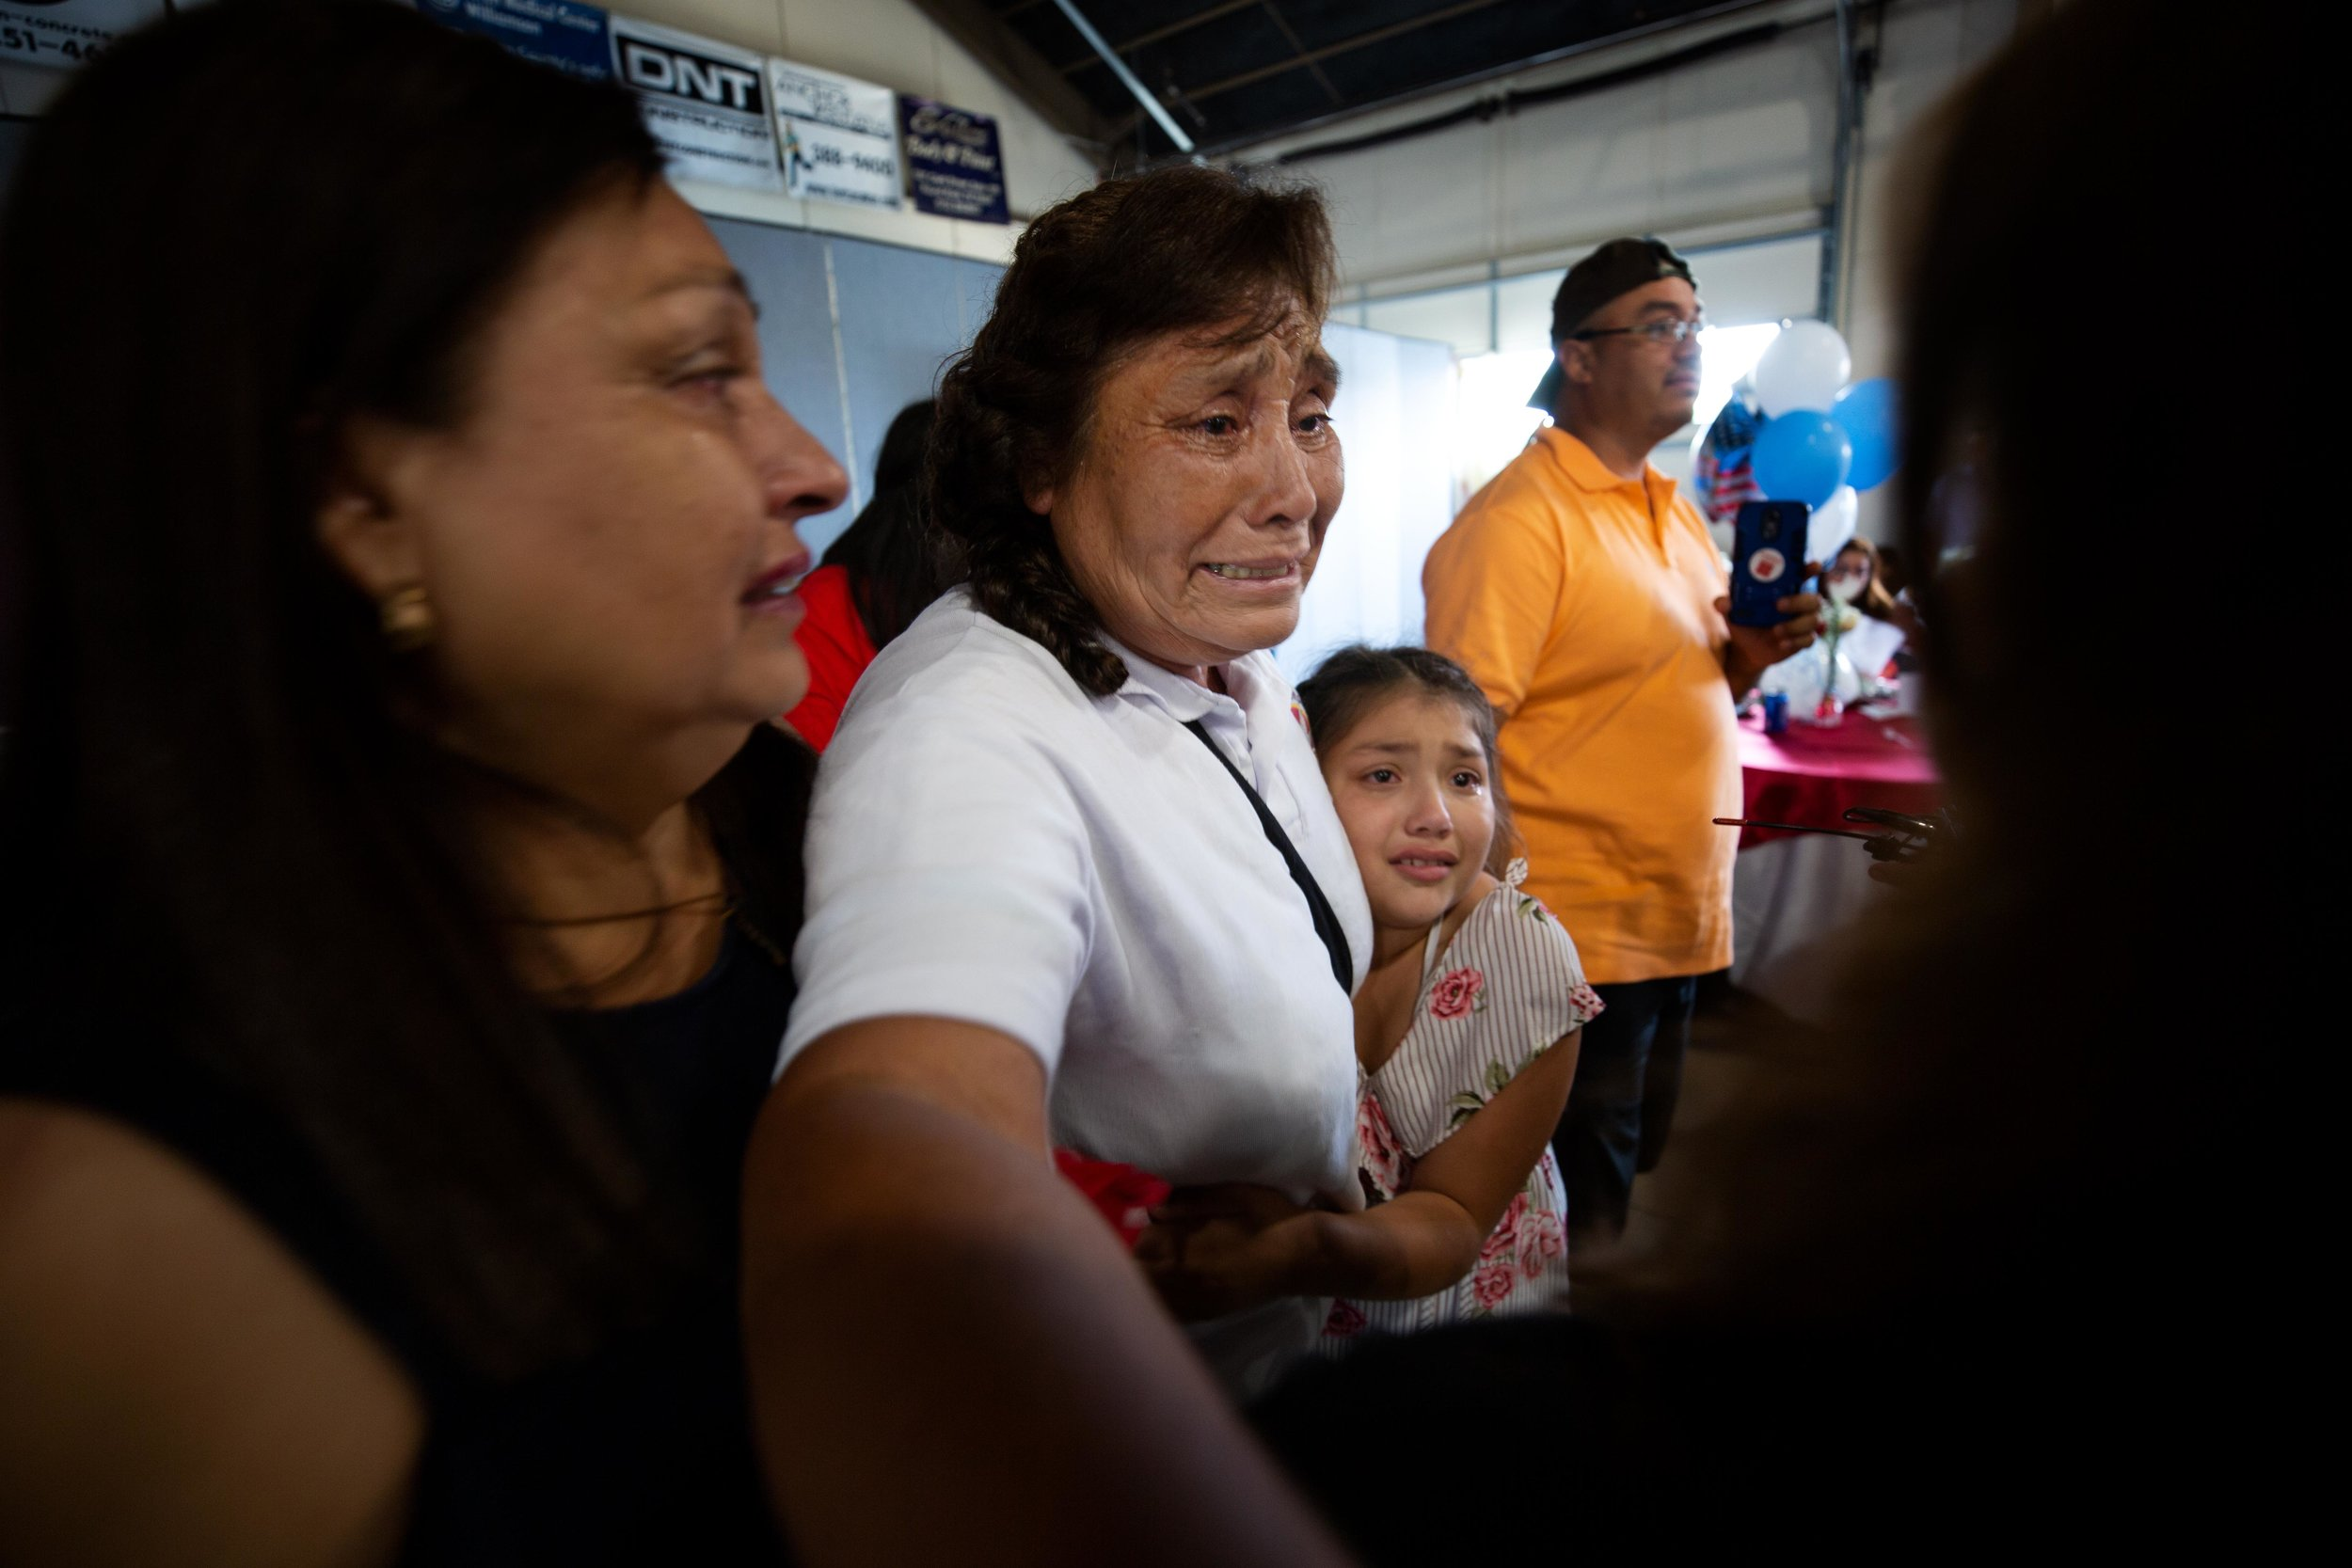 ROUND ROCK, TX. August 10, 2018. Rosa Barriga Barriga embraces her family during a family reunification event hosted by a program called Palomas Mensajeras (homing pigeons). Barriga traveled from the Mexican State of Michoacán to be reunited with family members she has not seen in over a decade. Montinique Monroe for KUT News